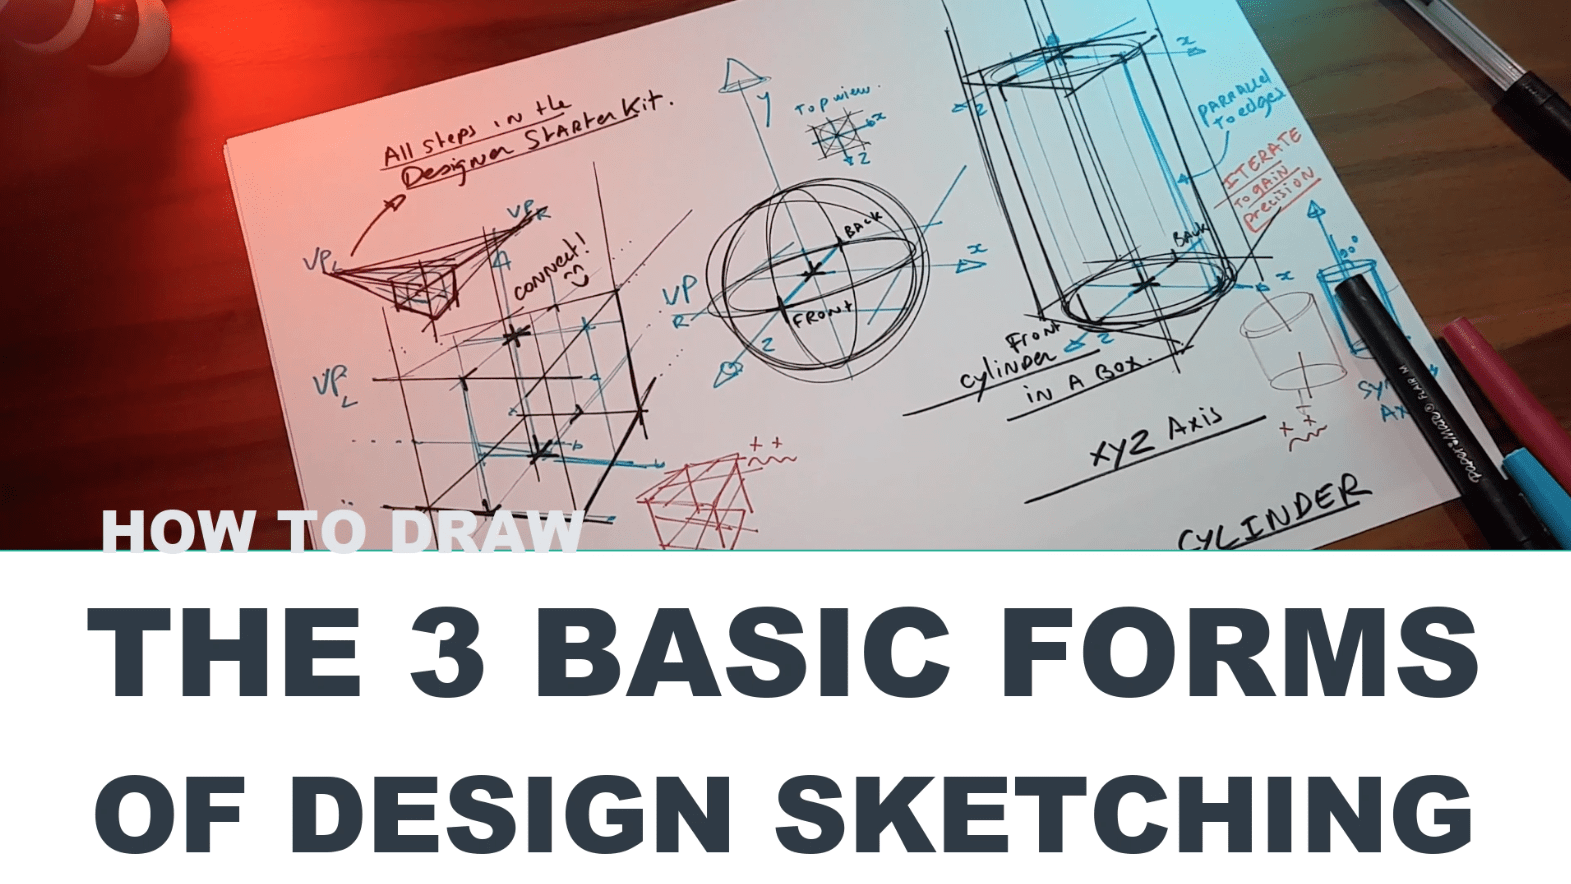 How to draw the 3 basic forms of design sketching (Cube Sphere Cylinder)